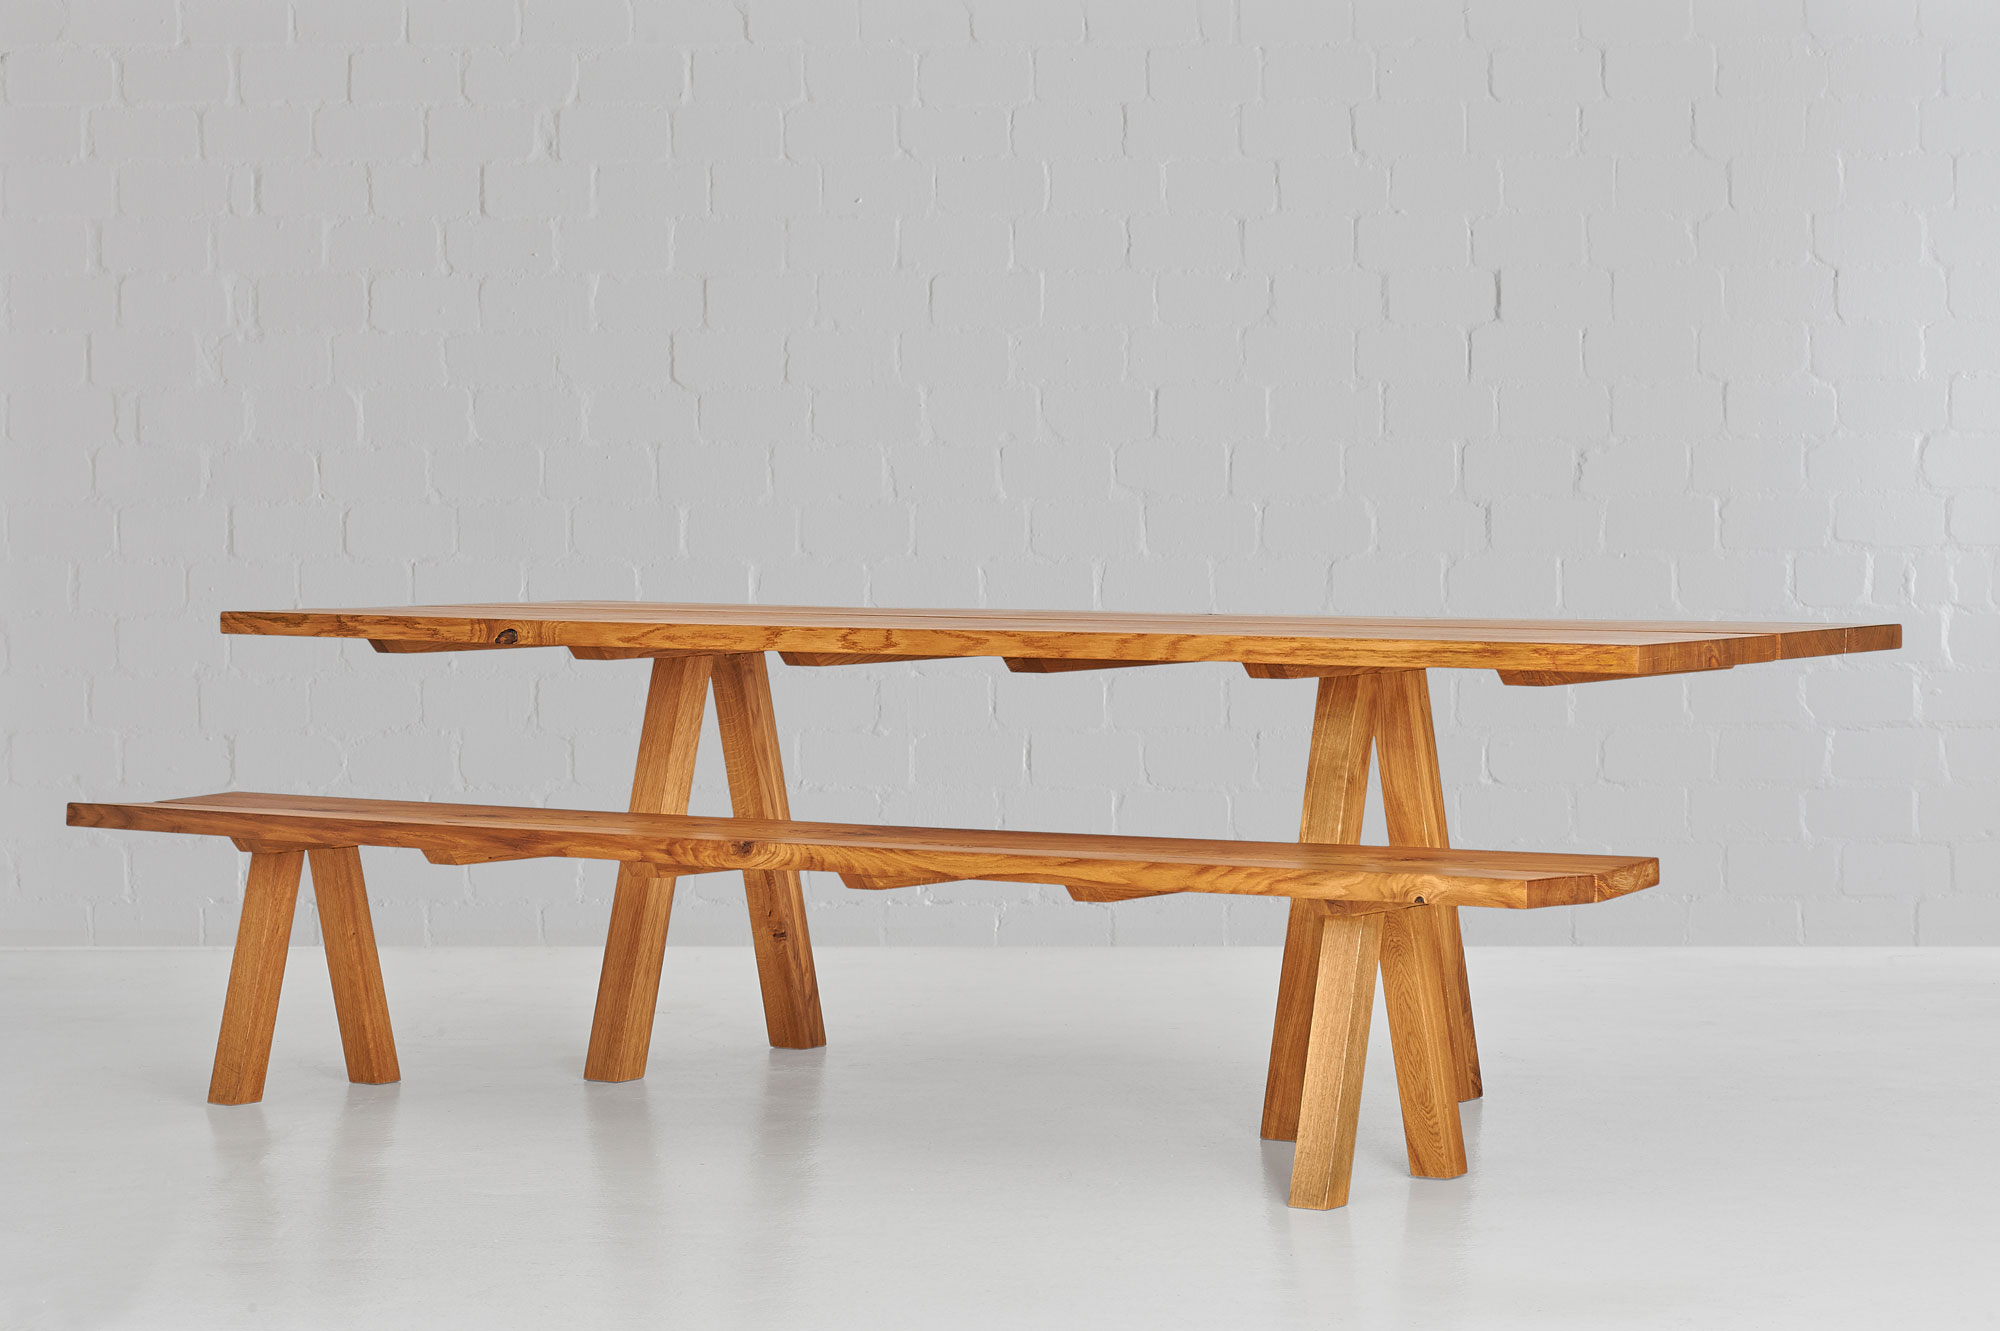 Designer Tree Trunk Table PAPILIO 0460 custom made in solid wood by vitamin design